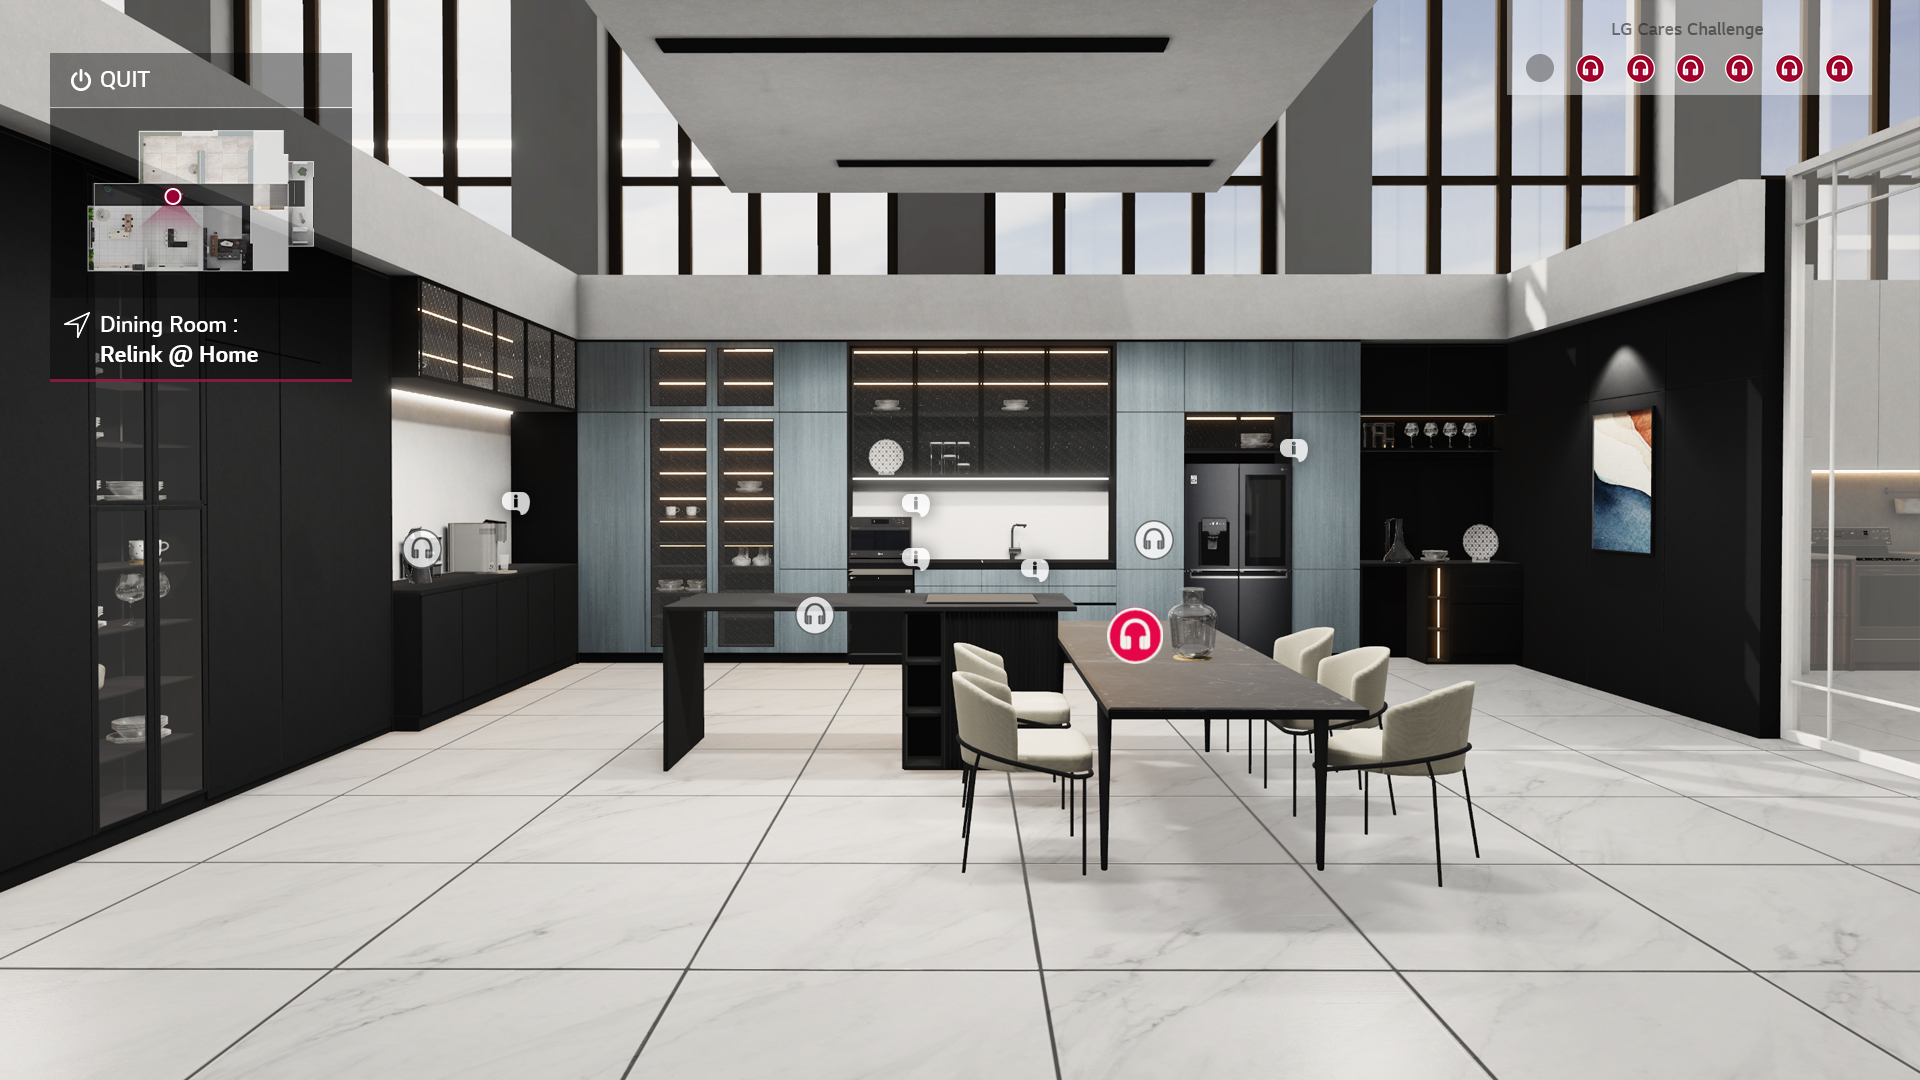 The dining room of the Home Appliance and Air Solution's virtual home, showing more information on LG's InstaView refrigerator, electronic cooktop, PuriCare water purifier and more